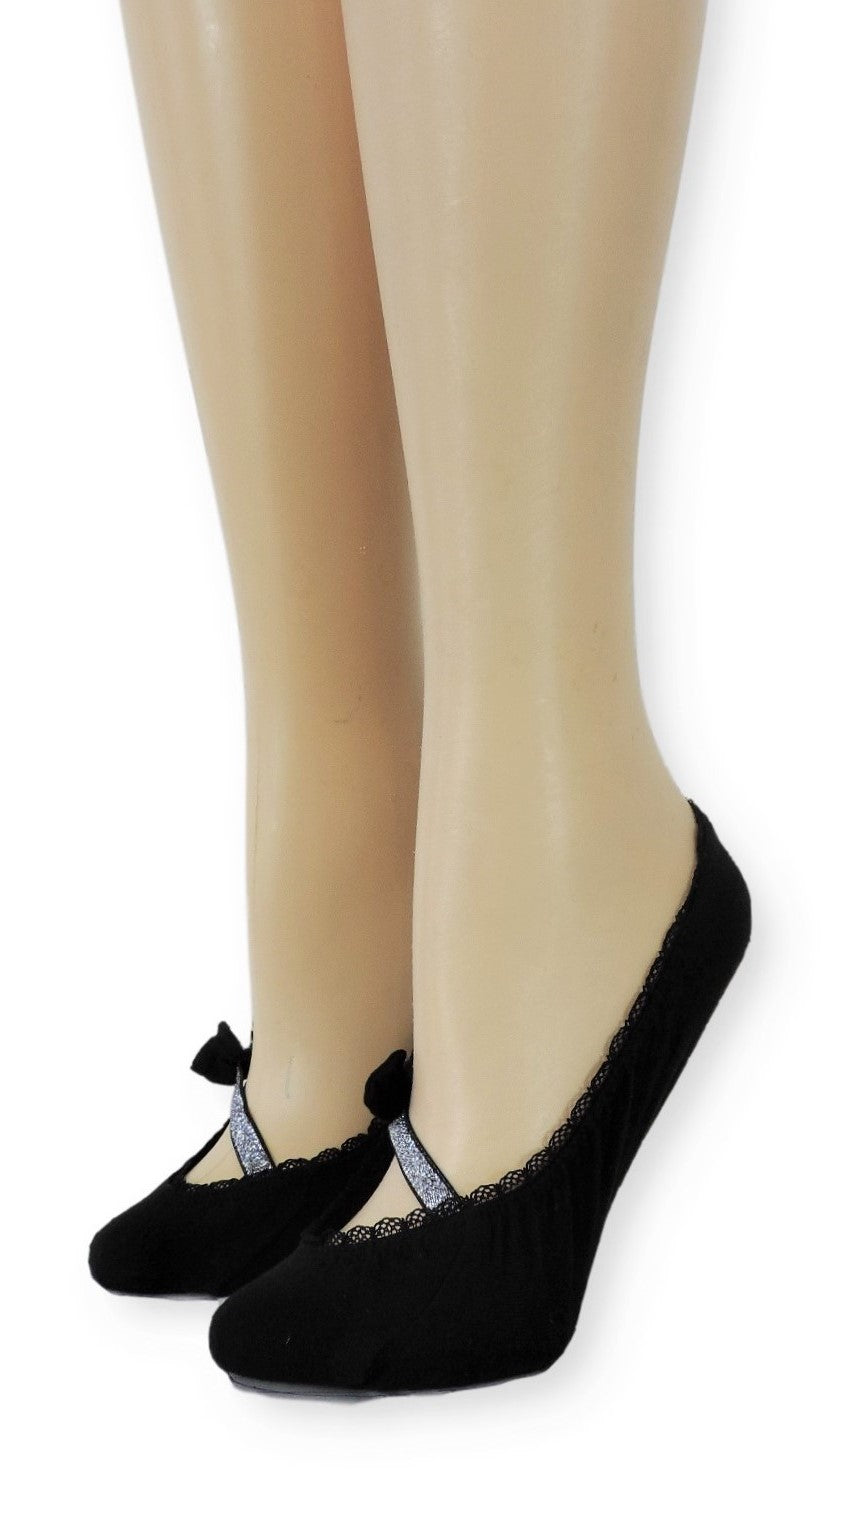 Sober Ankle Socks with Glitter Bow Strap - Global Trendz Fashion®